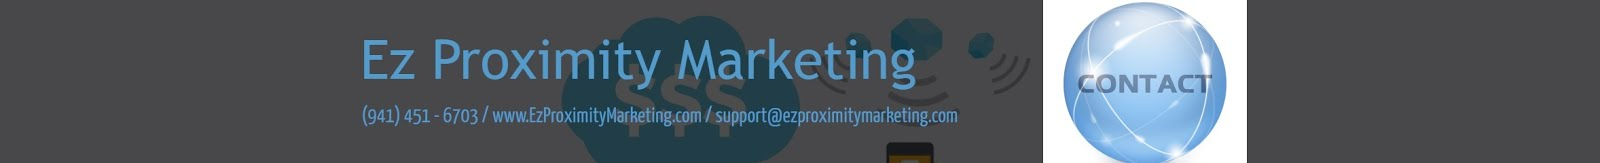 EzProximity Marketing